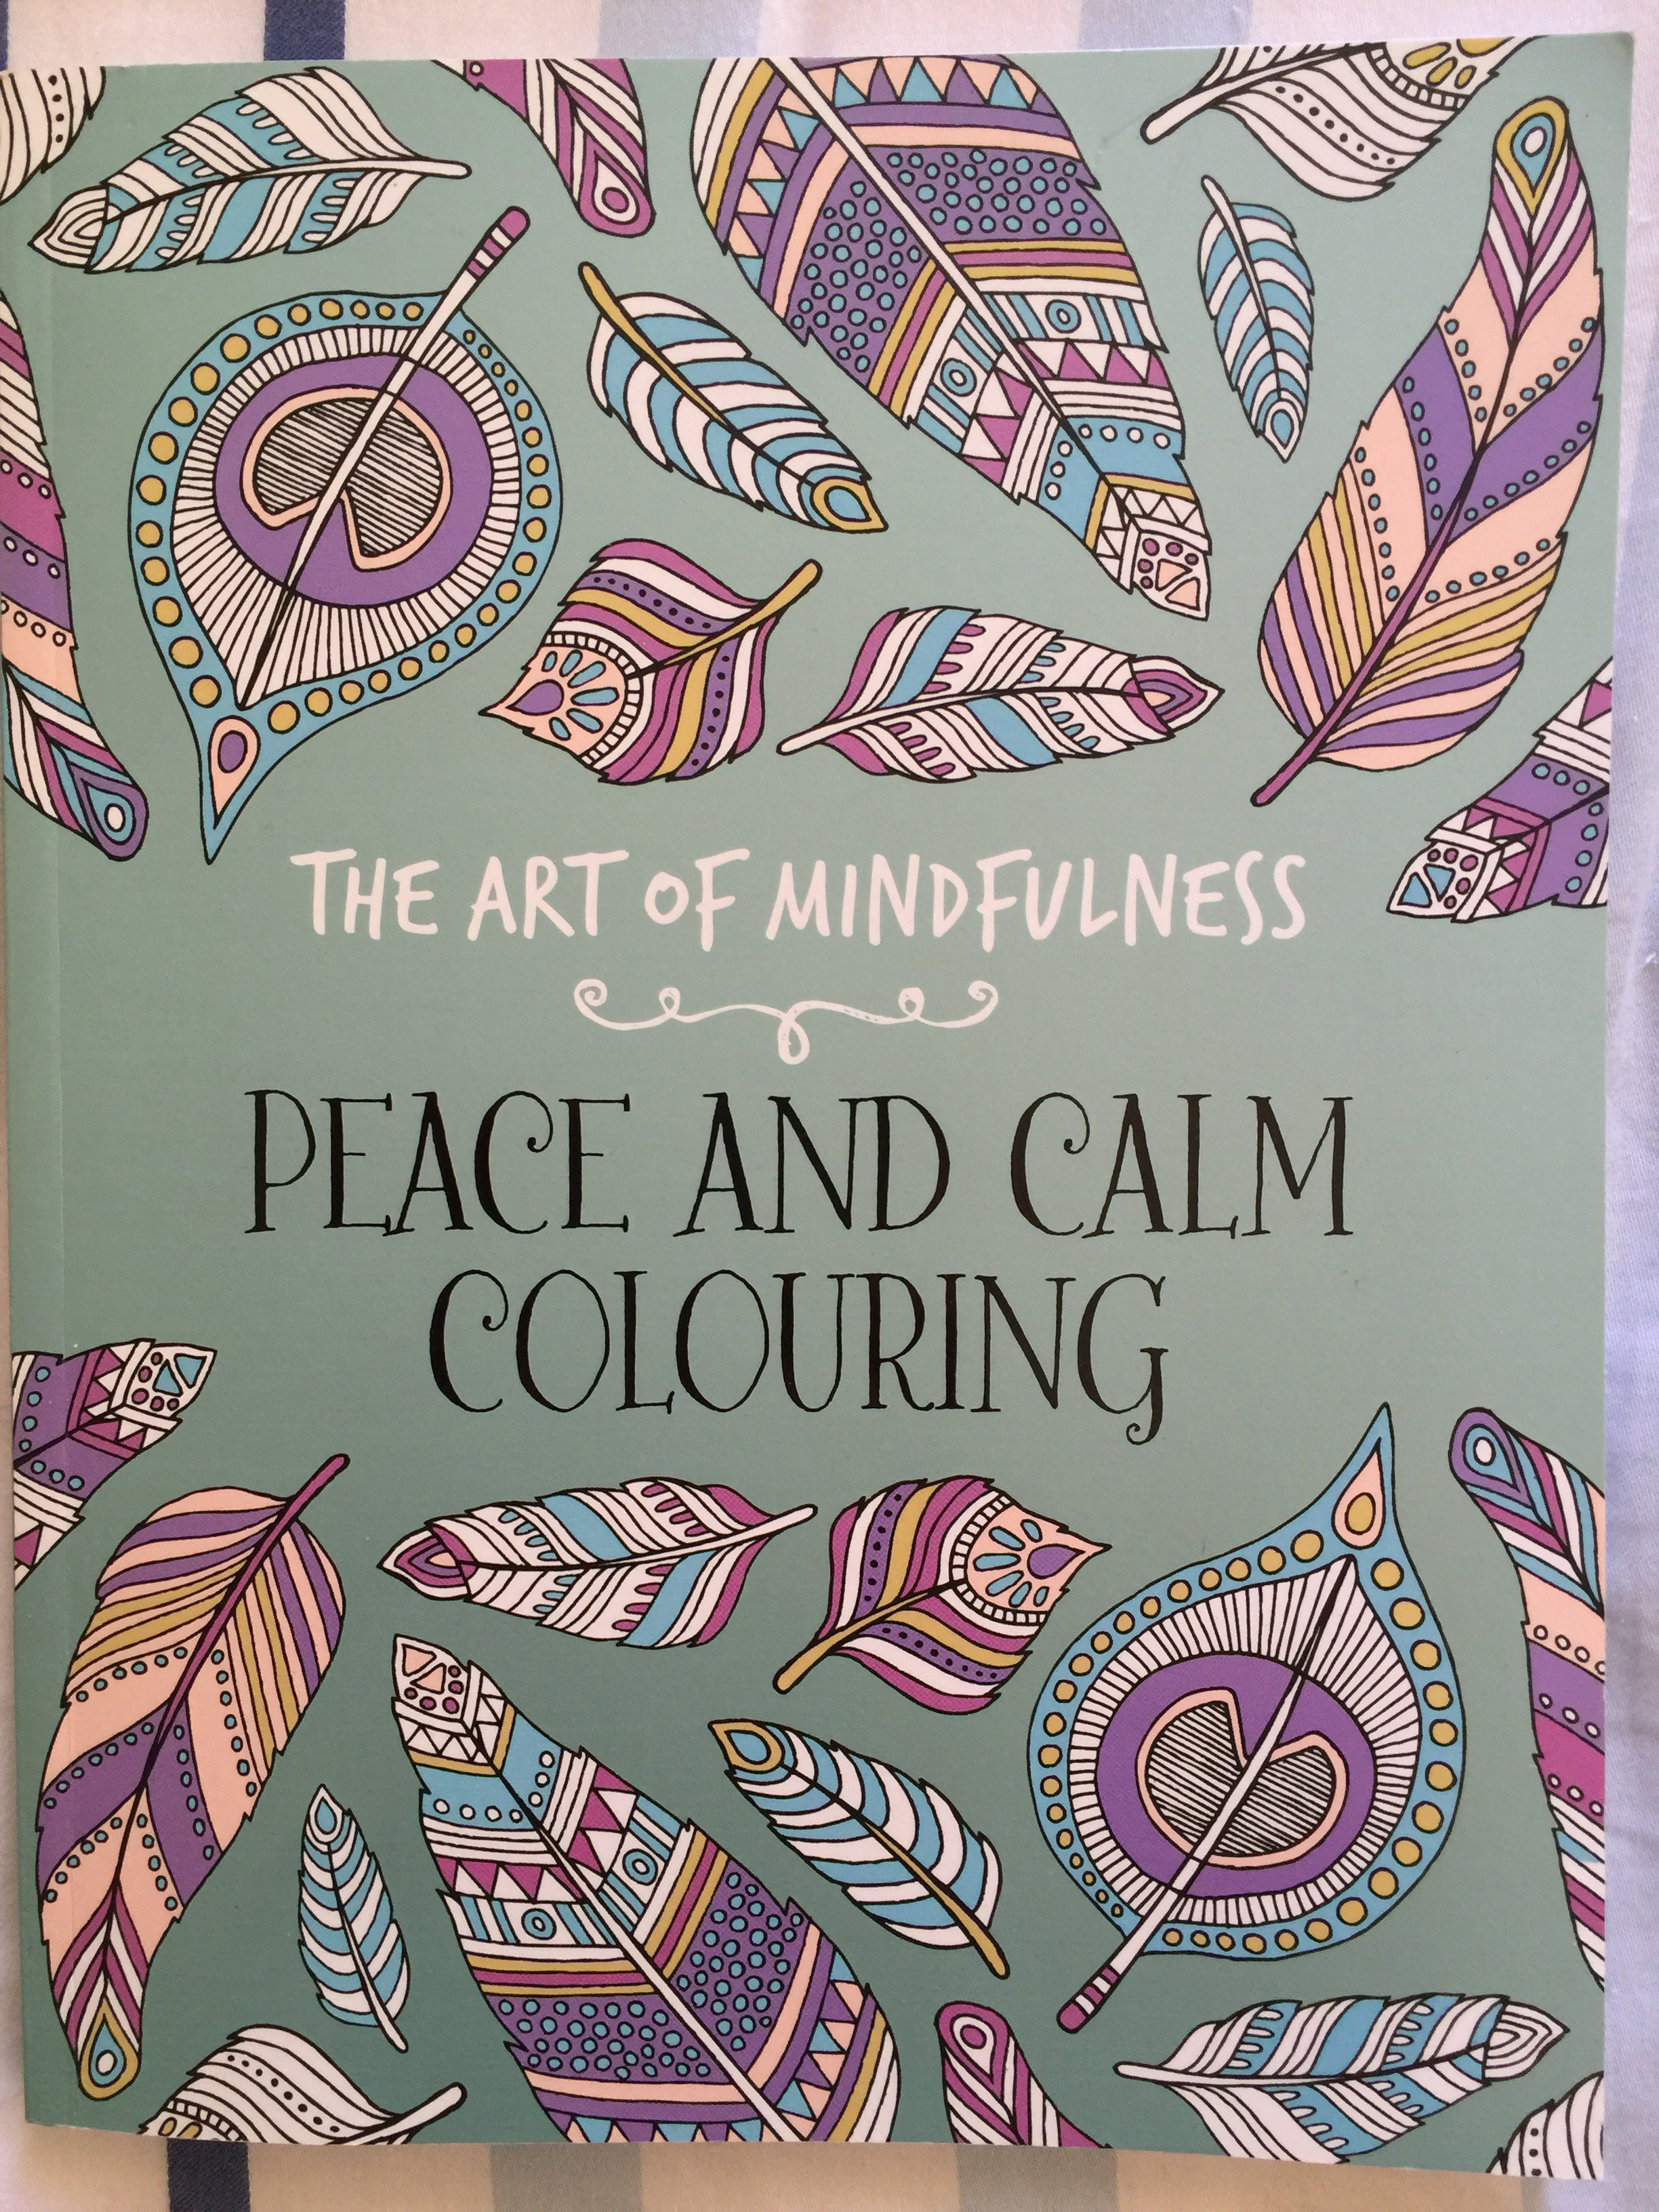 Art therapy coloring book michael omara - Color Colouring Adult Relaxing Art Therapy Pencils Coloring Stress Relief Completed Calming Patterns Cover Book